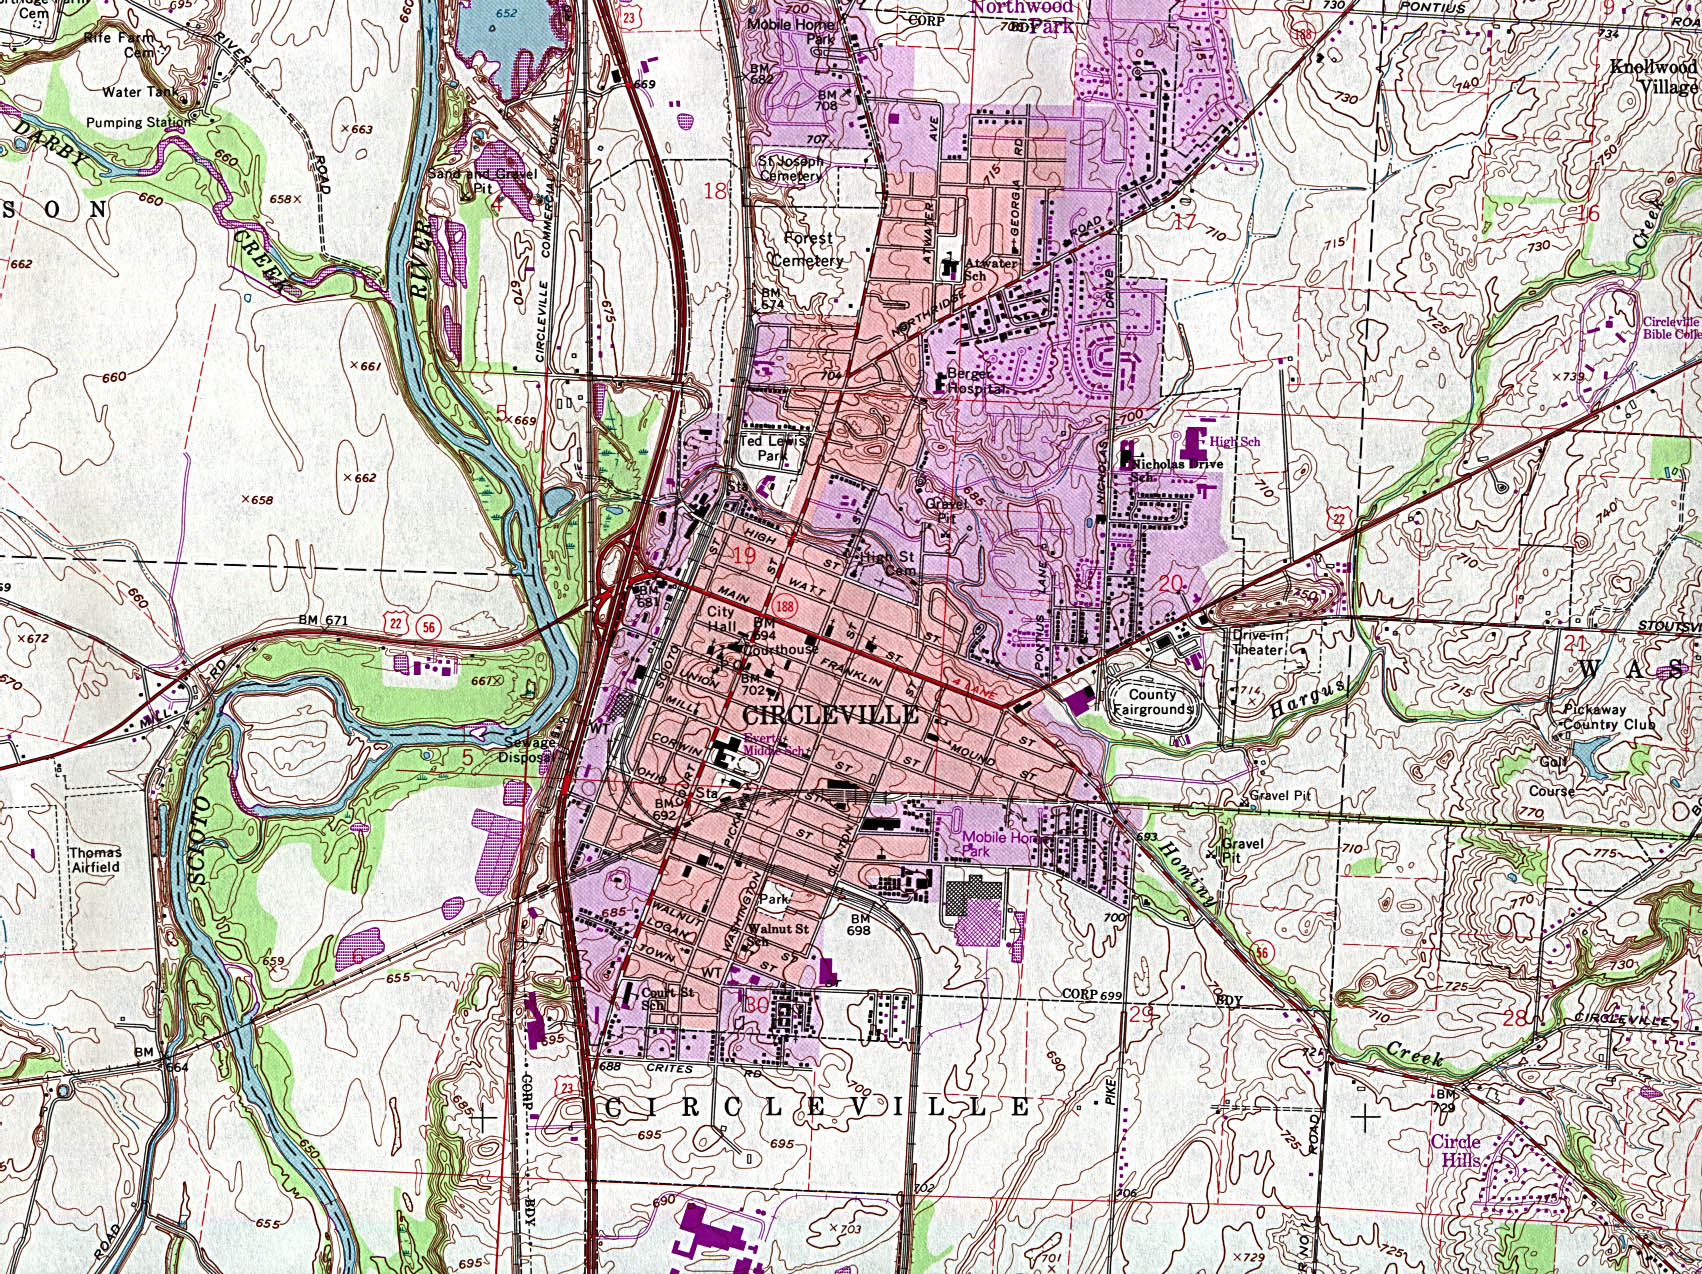 Circleville Topographic City Map, Ohio, United States